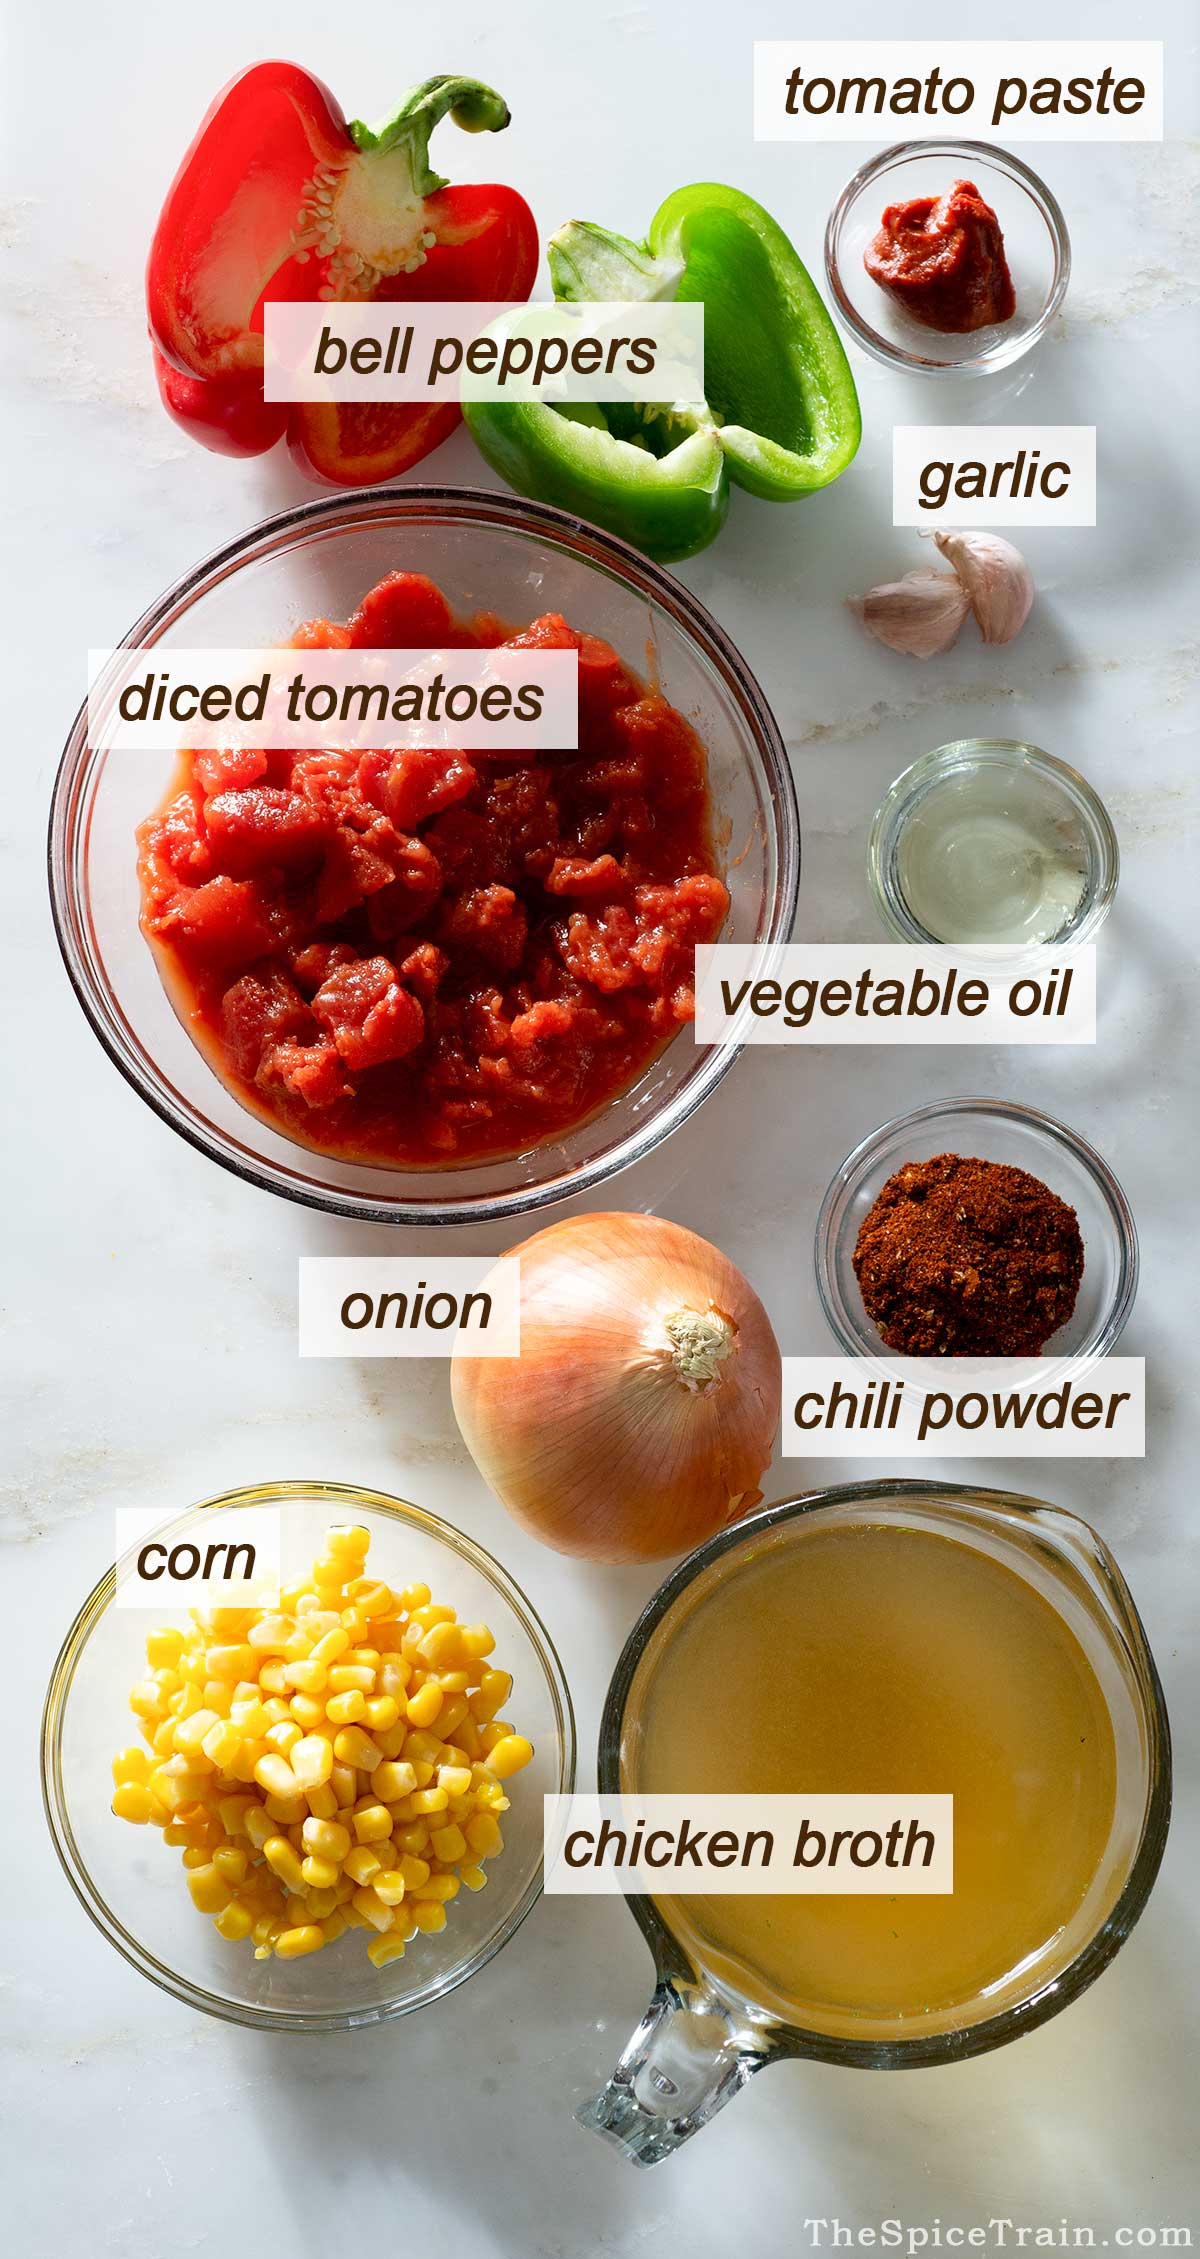 Chili ingredients on a kitchen counter.